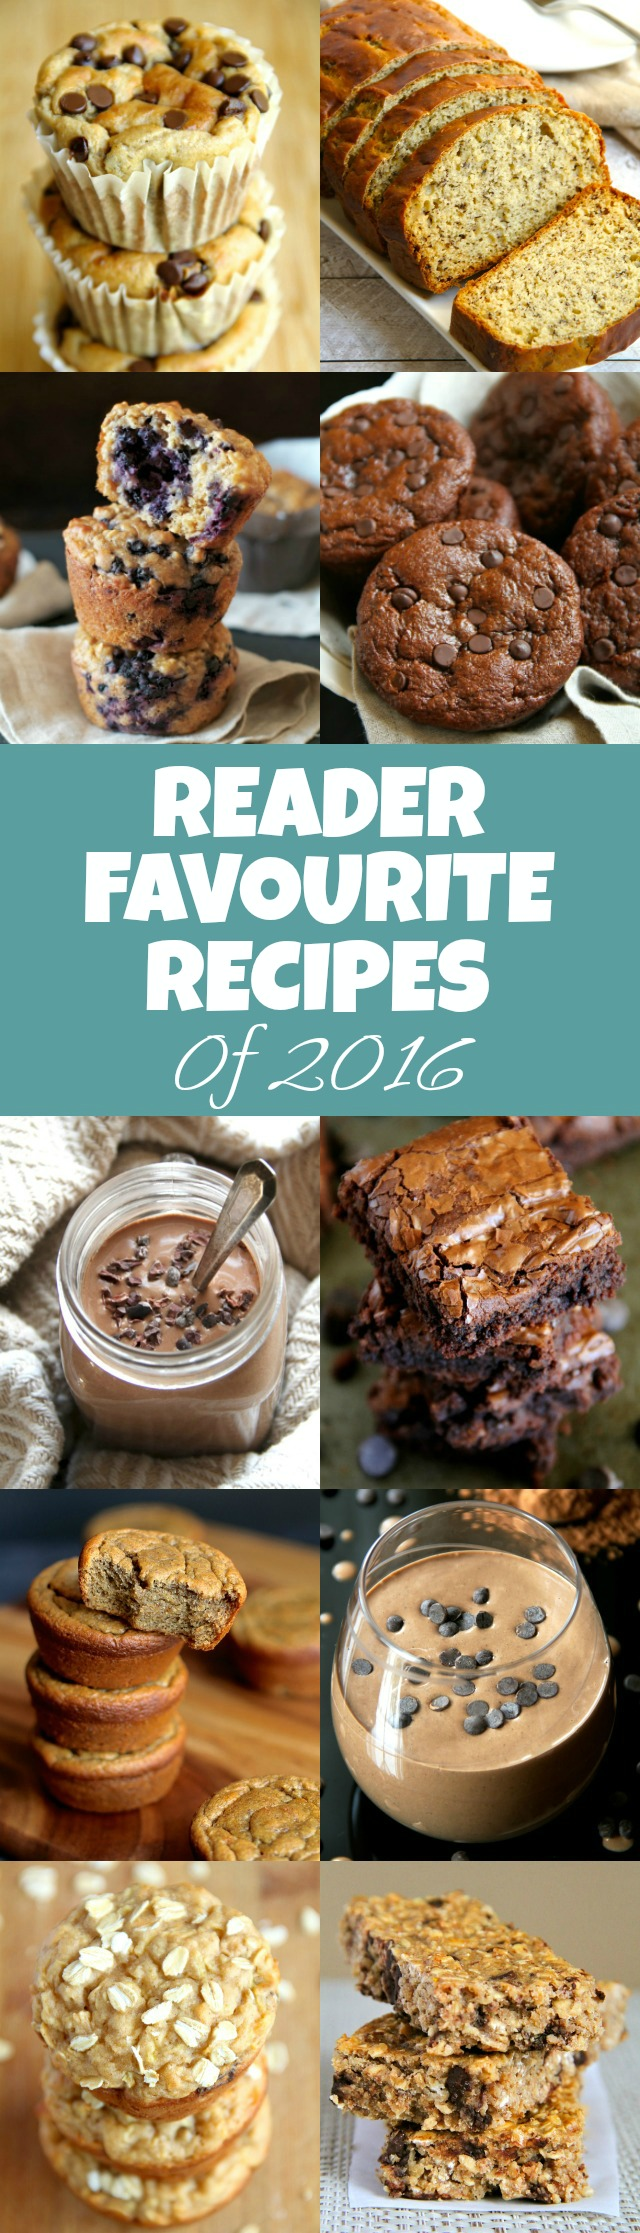 Top 10 Reader Favourite Recipes of 2016! - a collection of healthy desserts and snacks to incorporate into your diet in the new year! | runningwithspoons.com